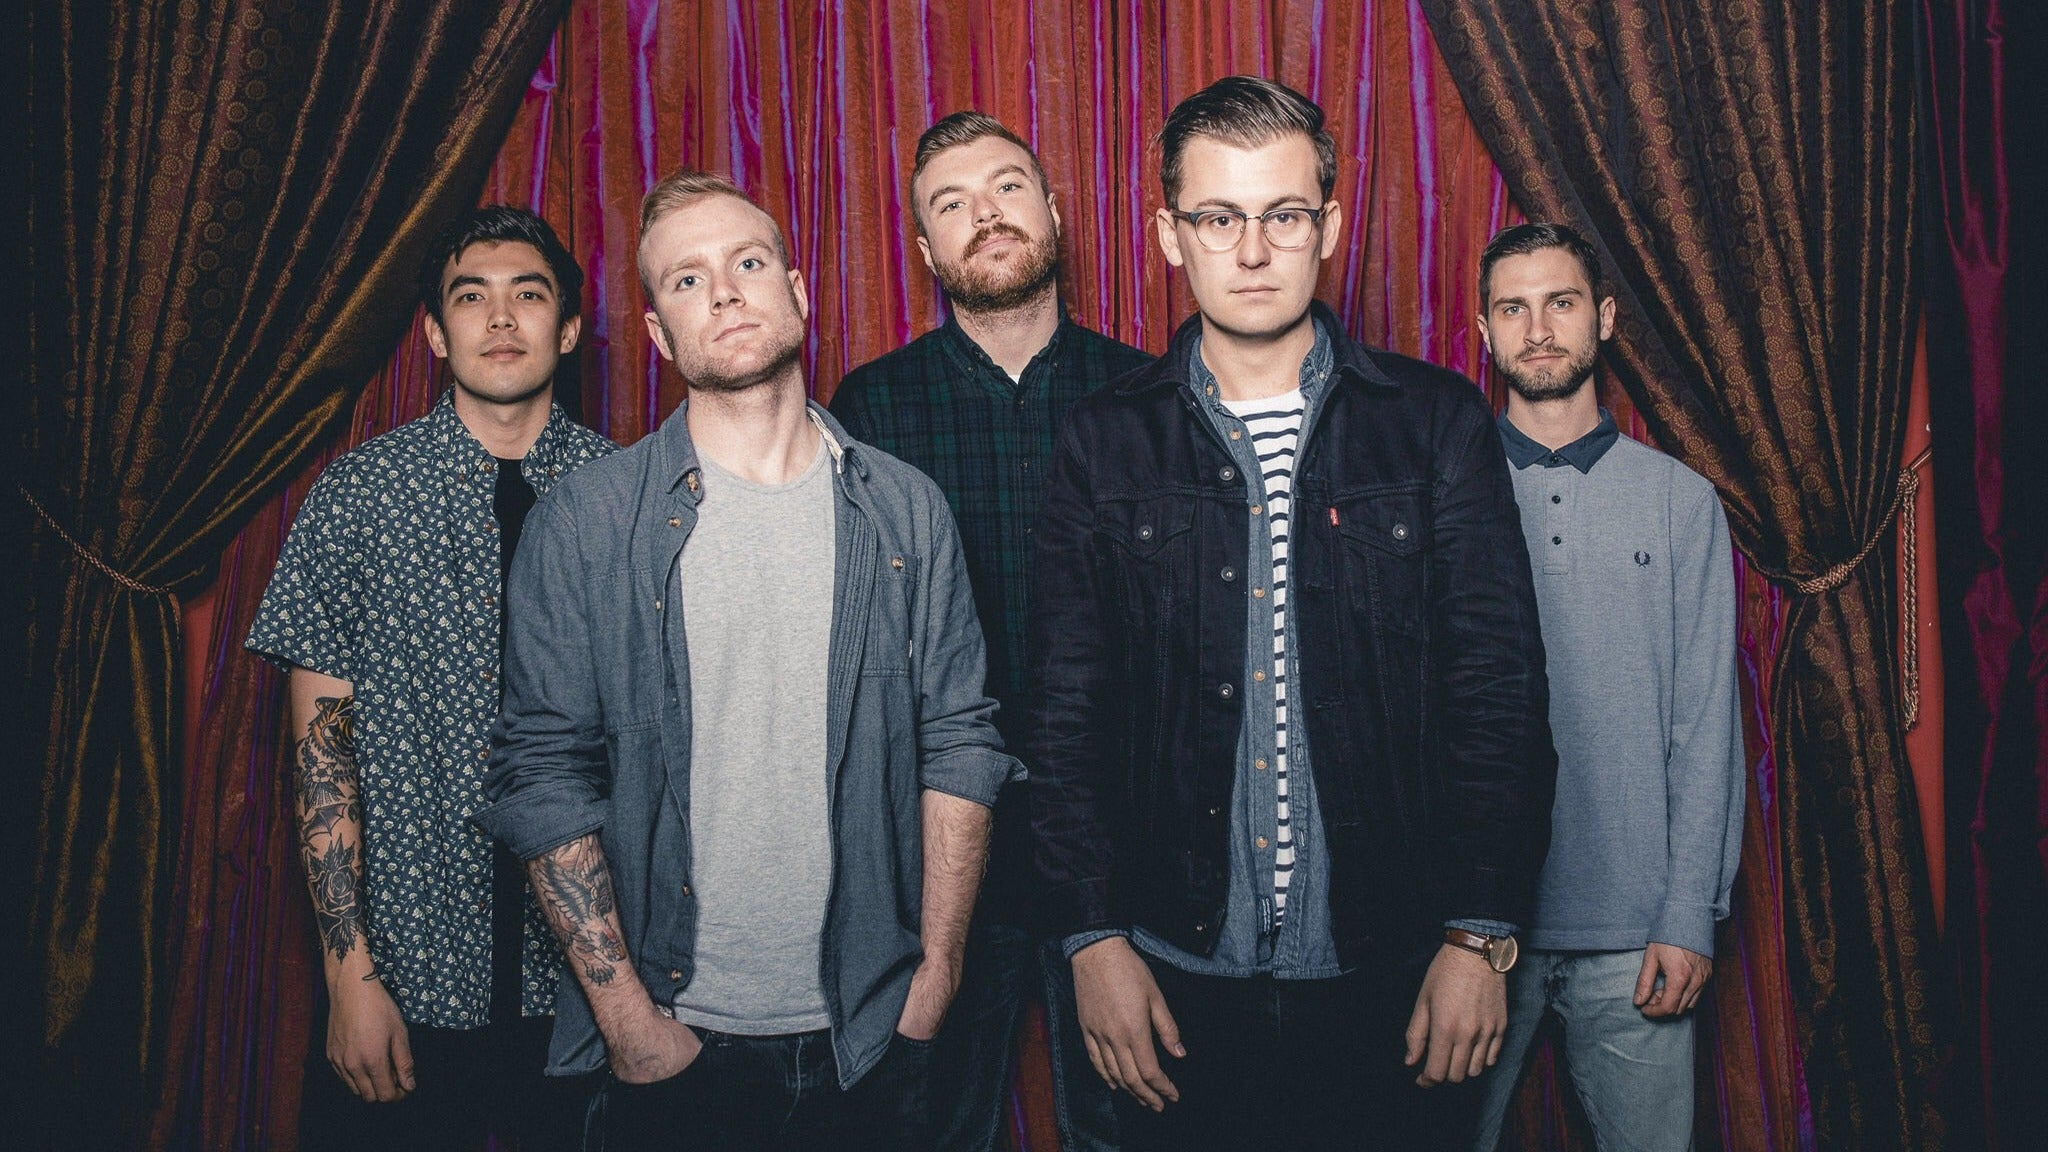 Seaway + Special Guests at The Shelter - Detroit, MI 48226